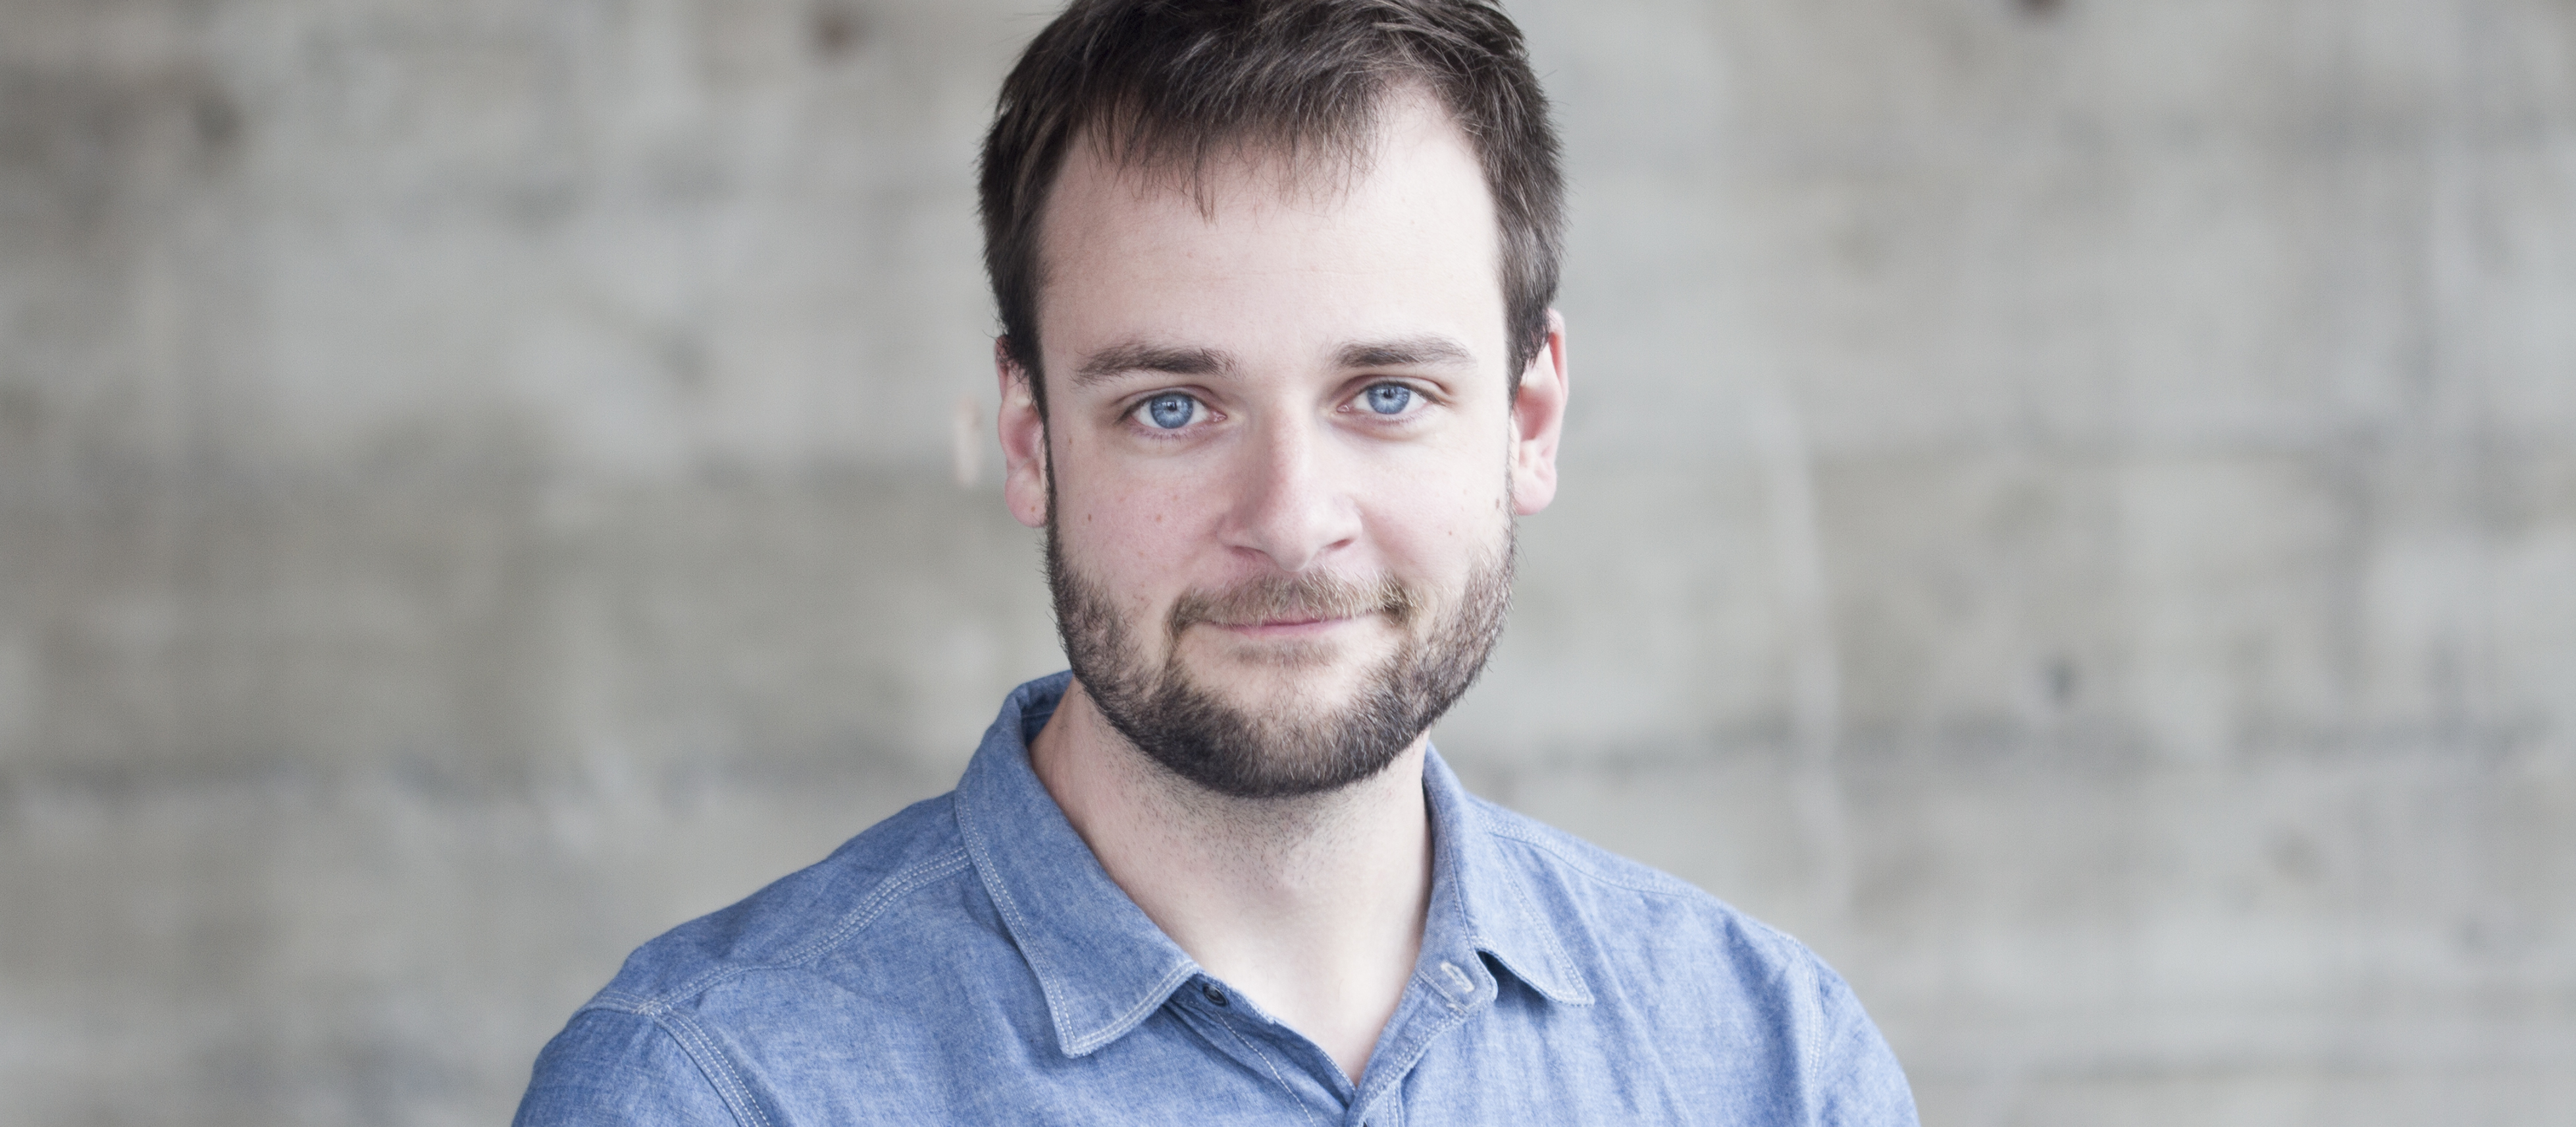 Pinterest Cofounder Evan Sharp Talks Guided Search and Promoted Pins